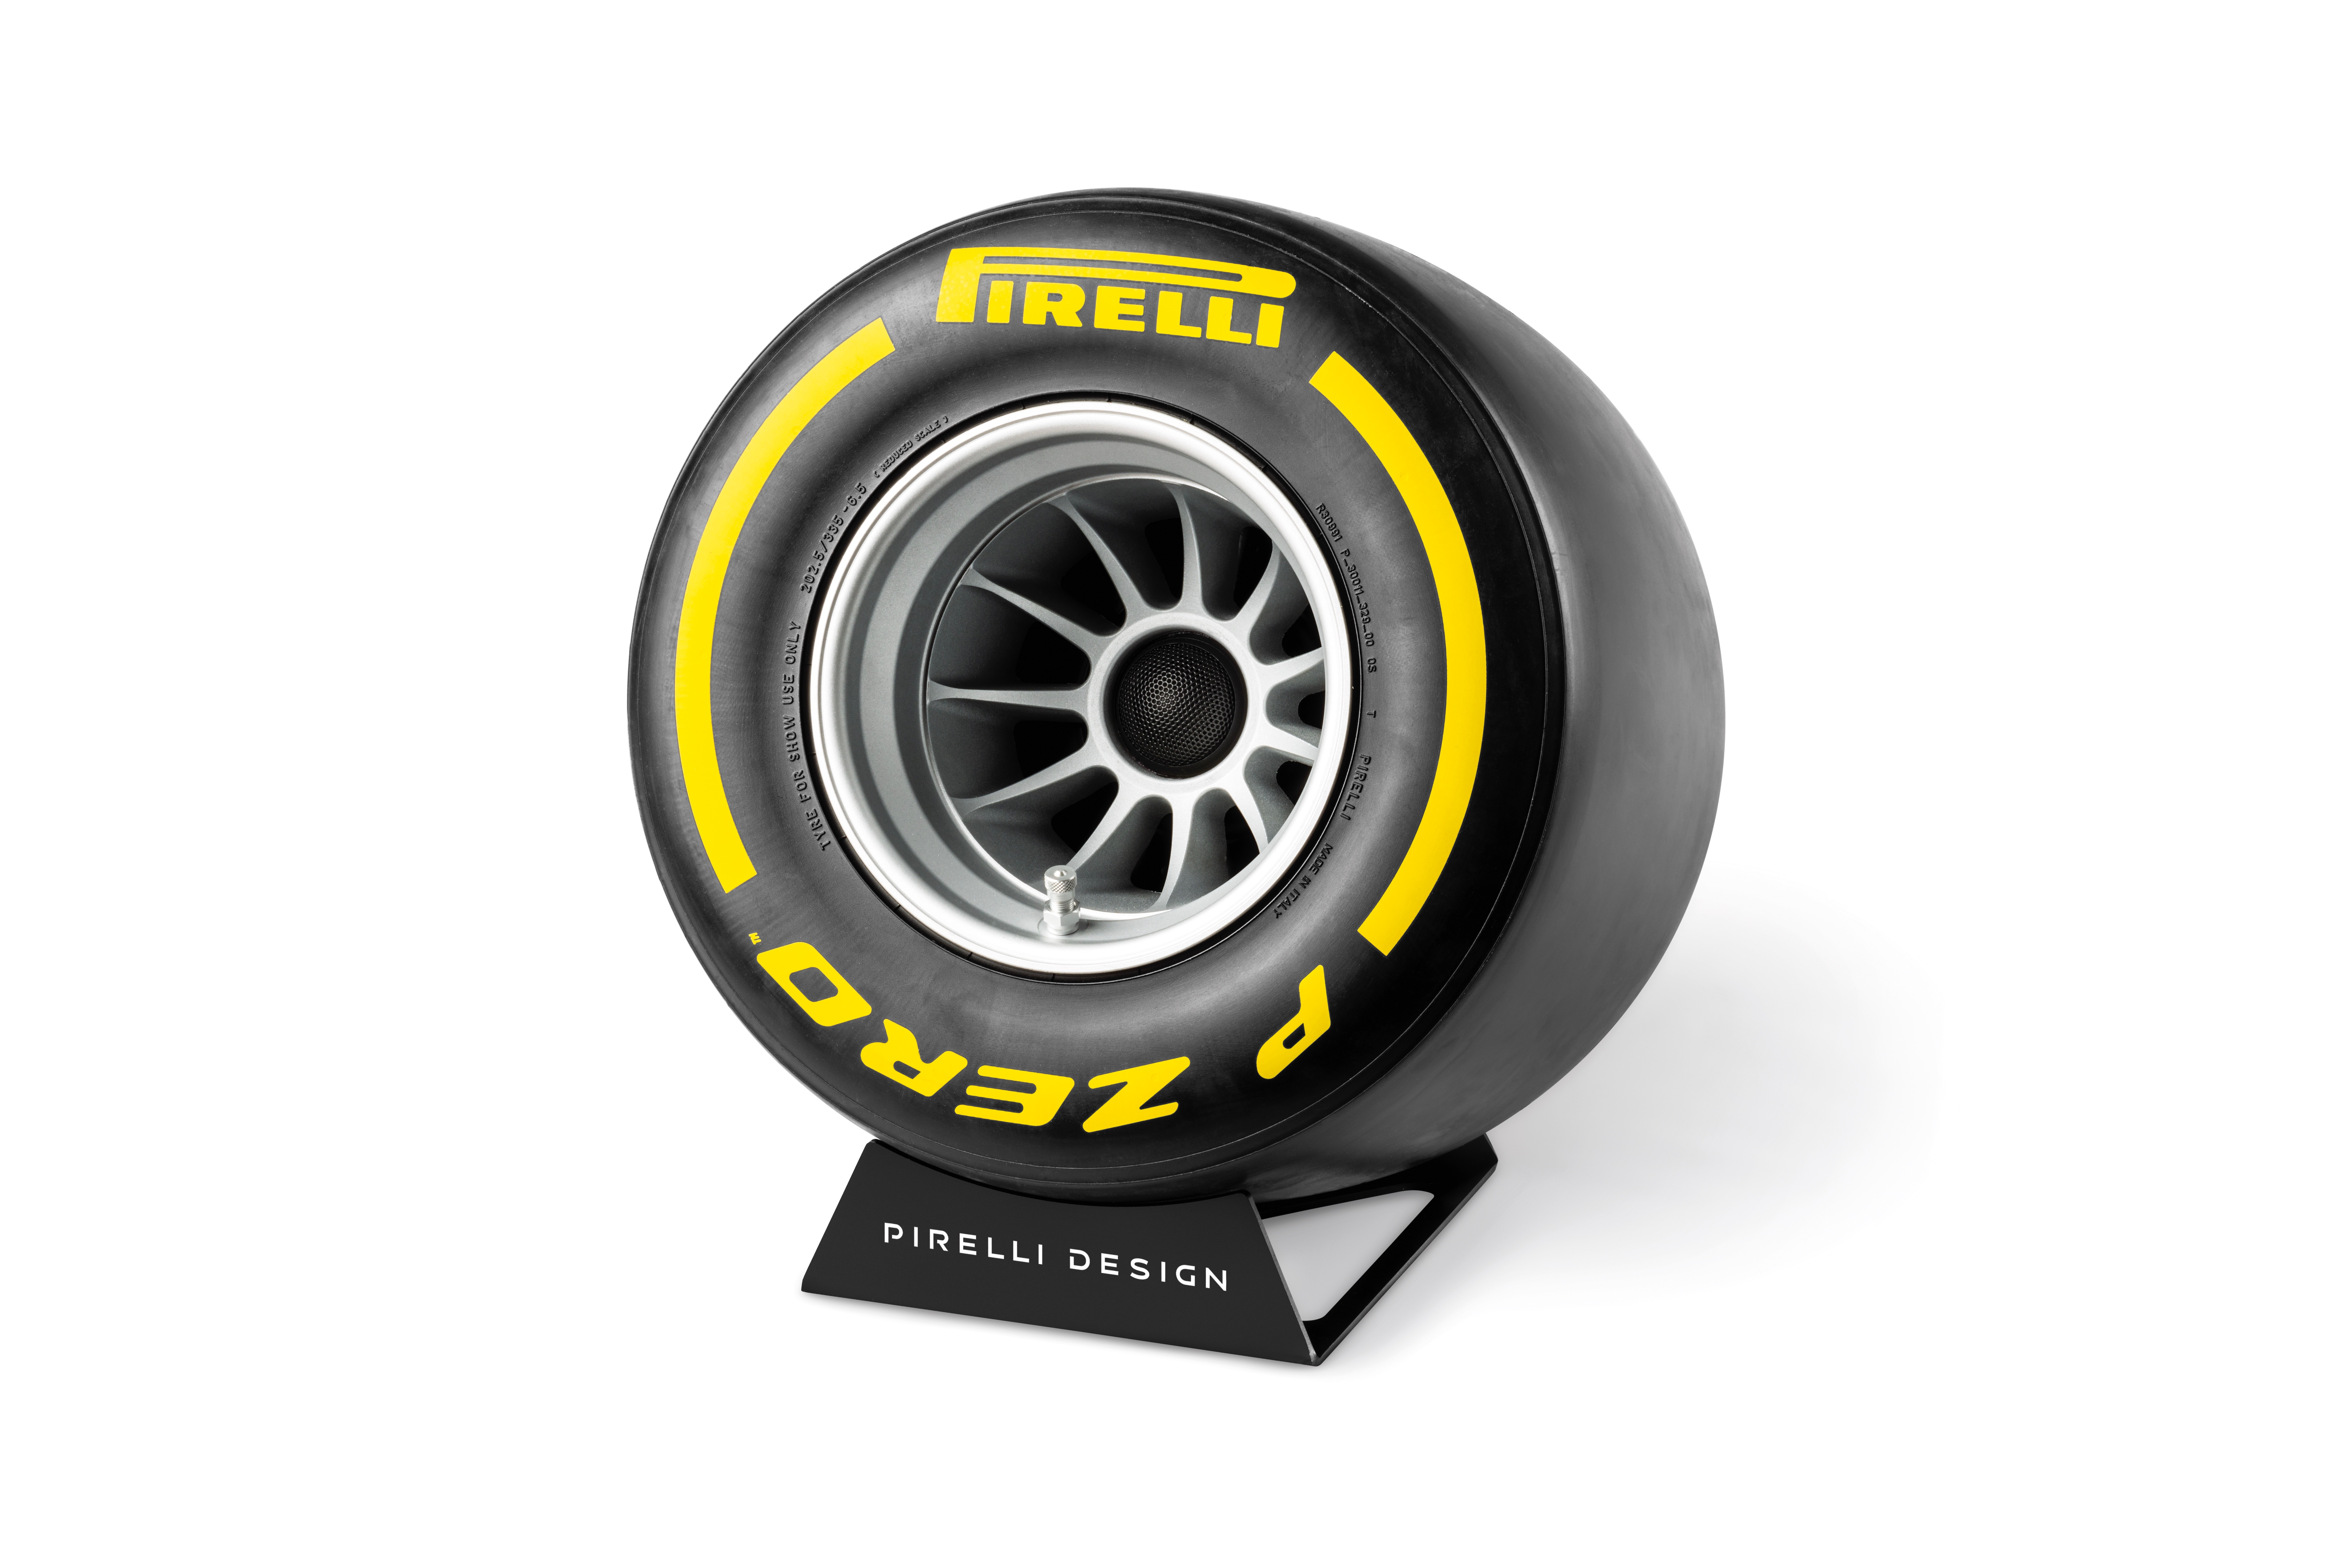 Pirelli Design, F1 racing technology available in new sound system, ClassicCars.com Journal